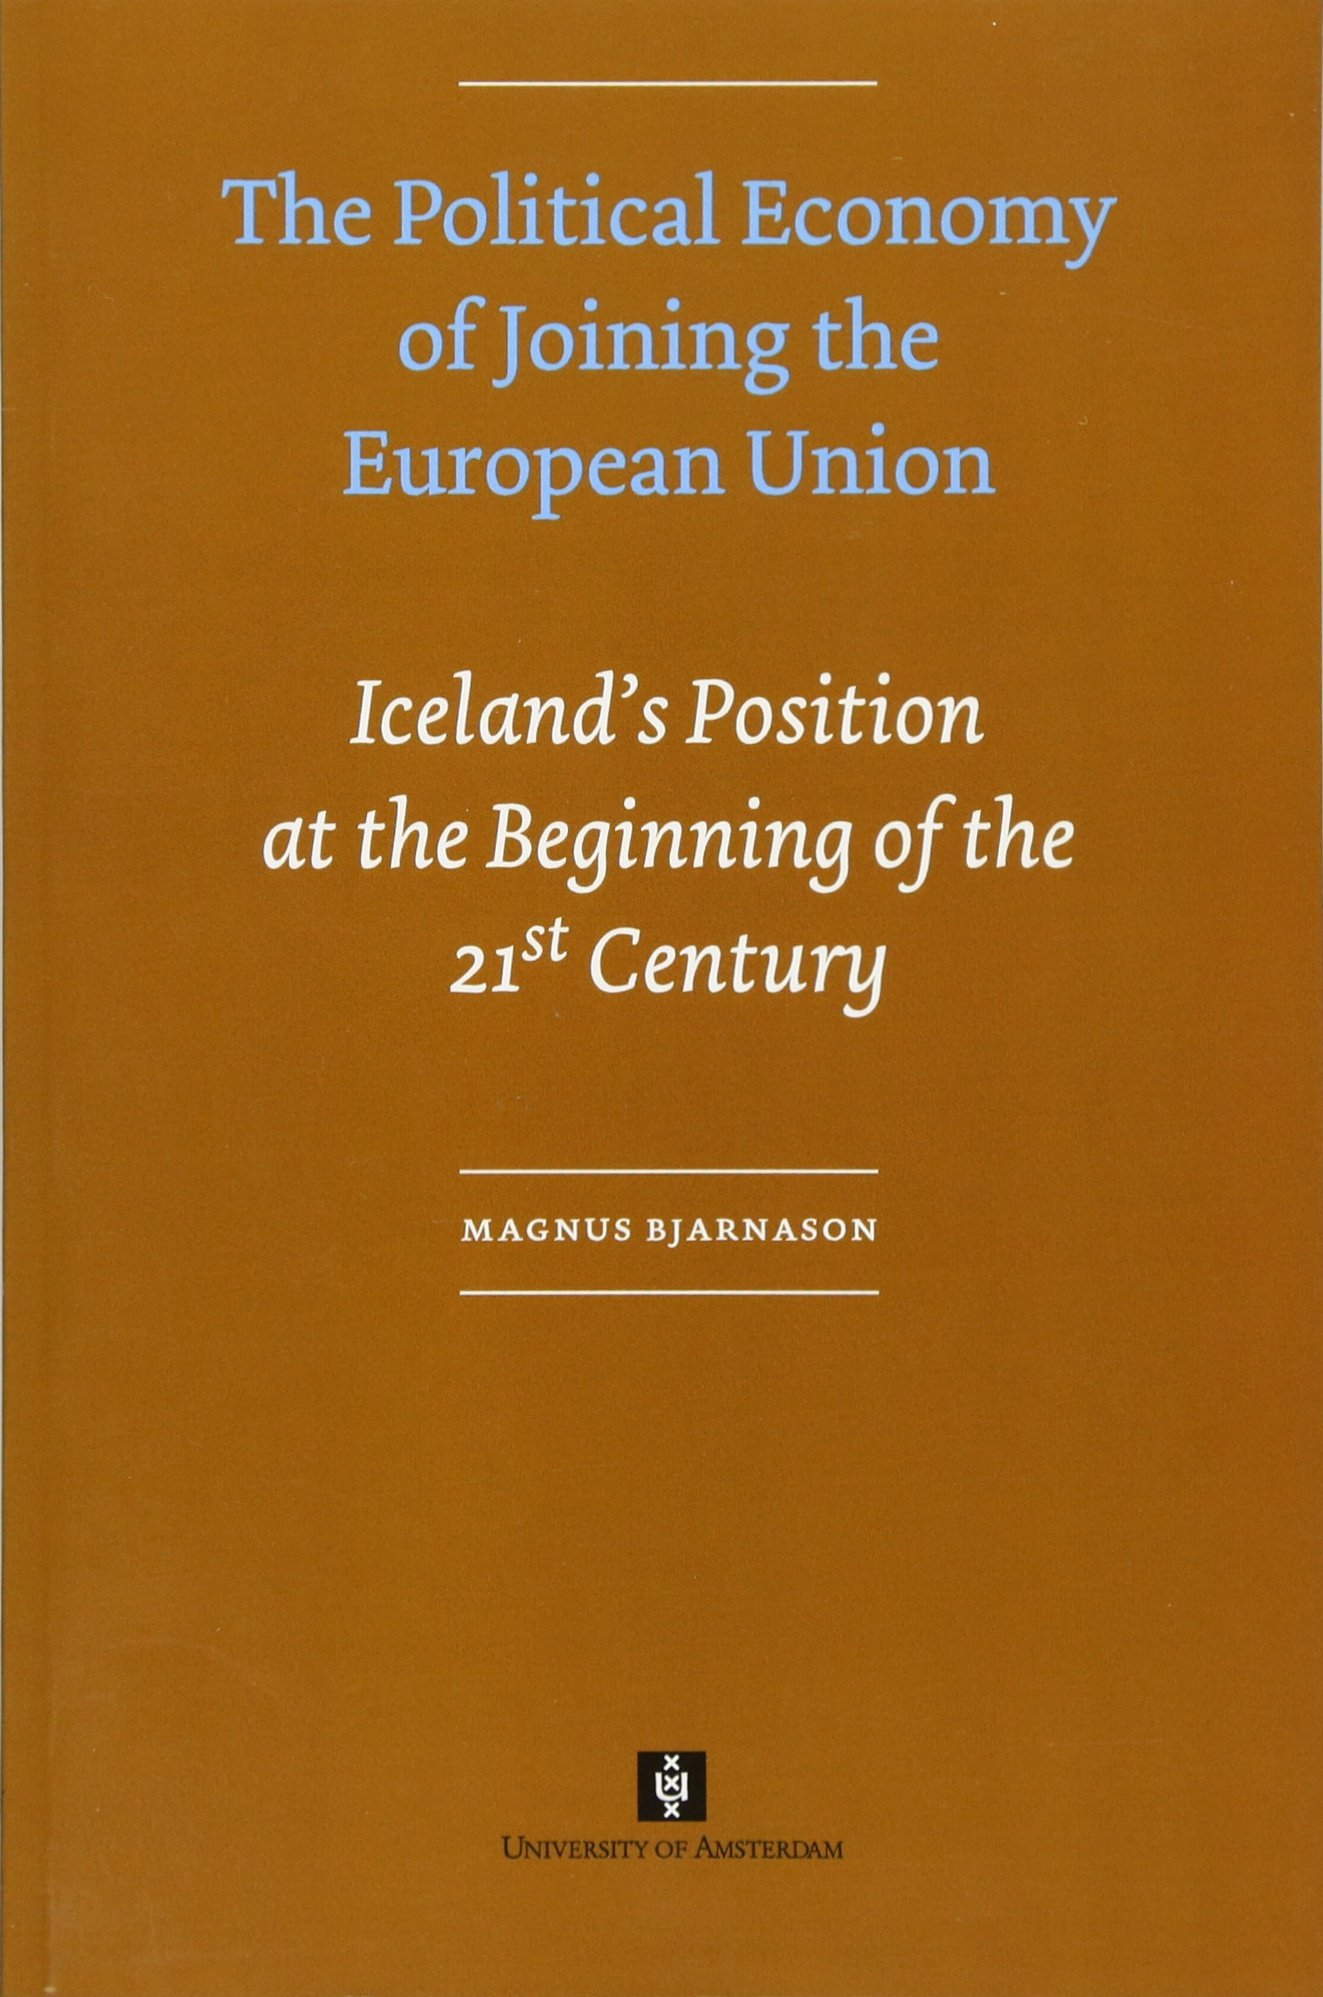 Download The Political Economy of Joining the European Union: Iceland's Position at the Beginning of the 21st Century pdf